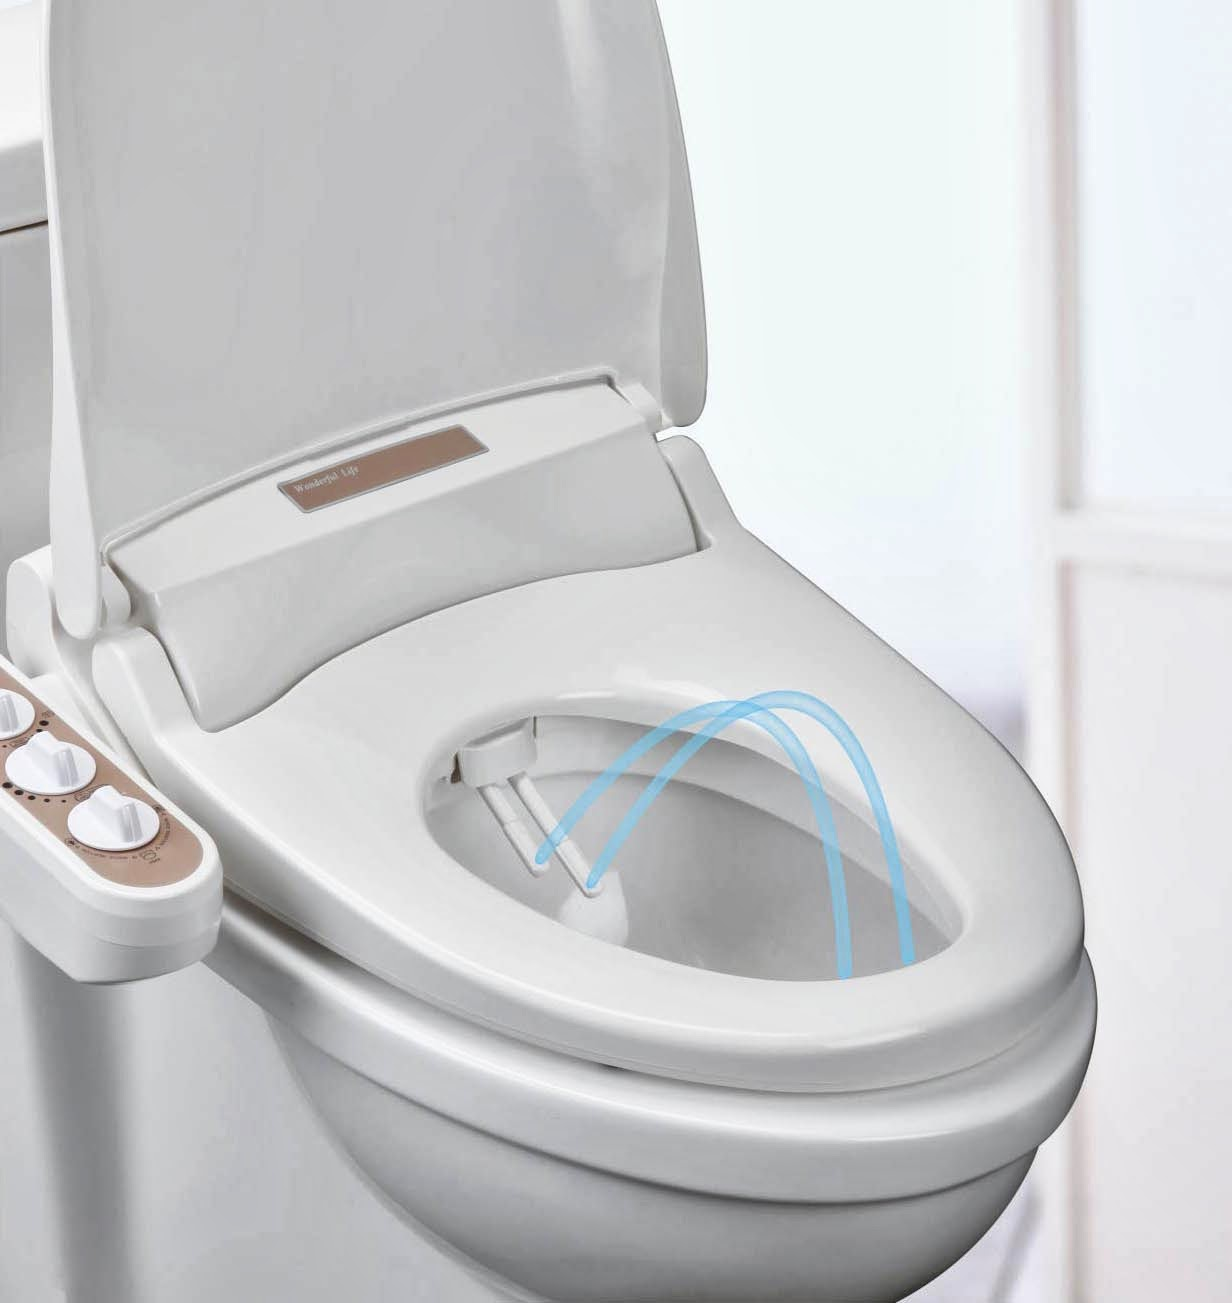 entree kibbles an ideal purchase for my ass the wellness bidet. Black Bedroom Furniture Sets. Home Design Ideas